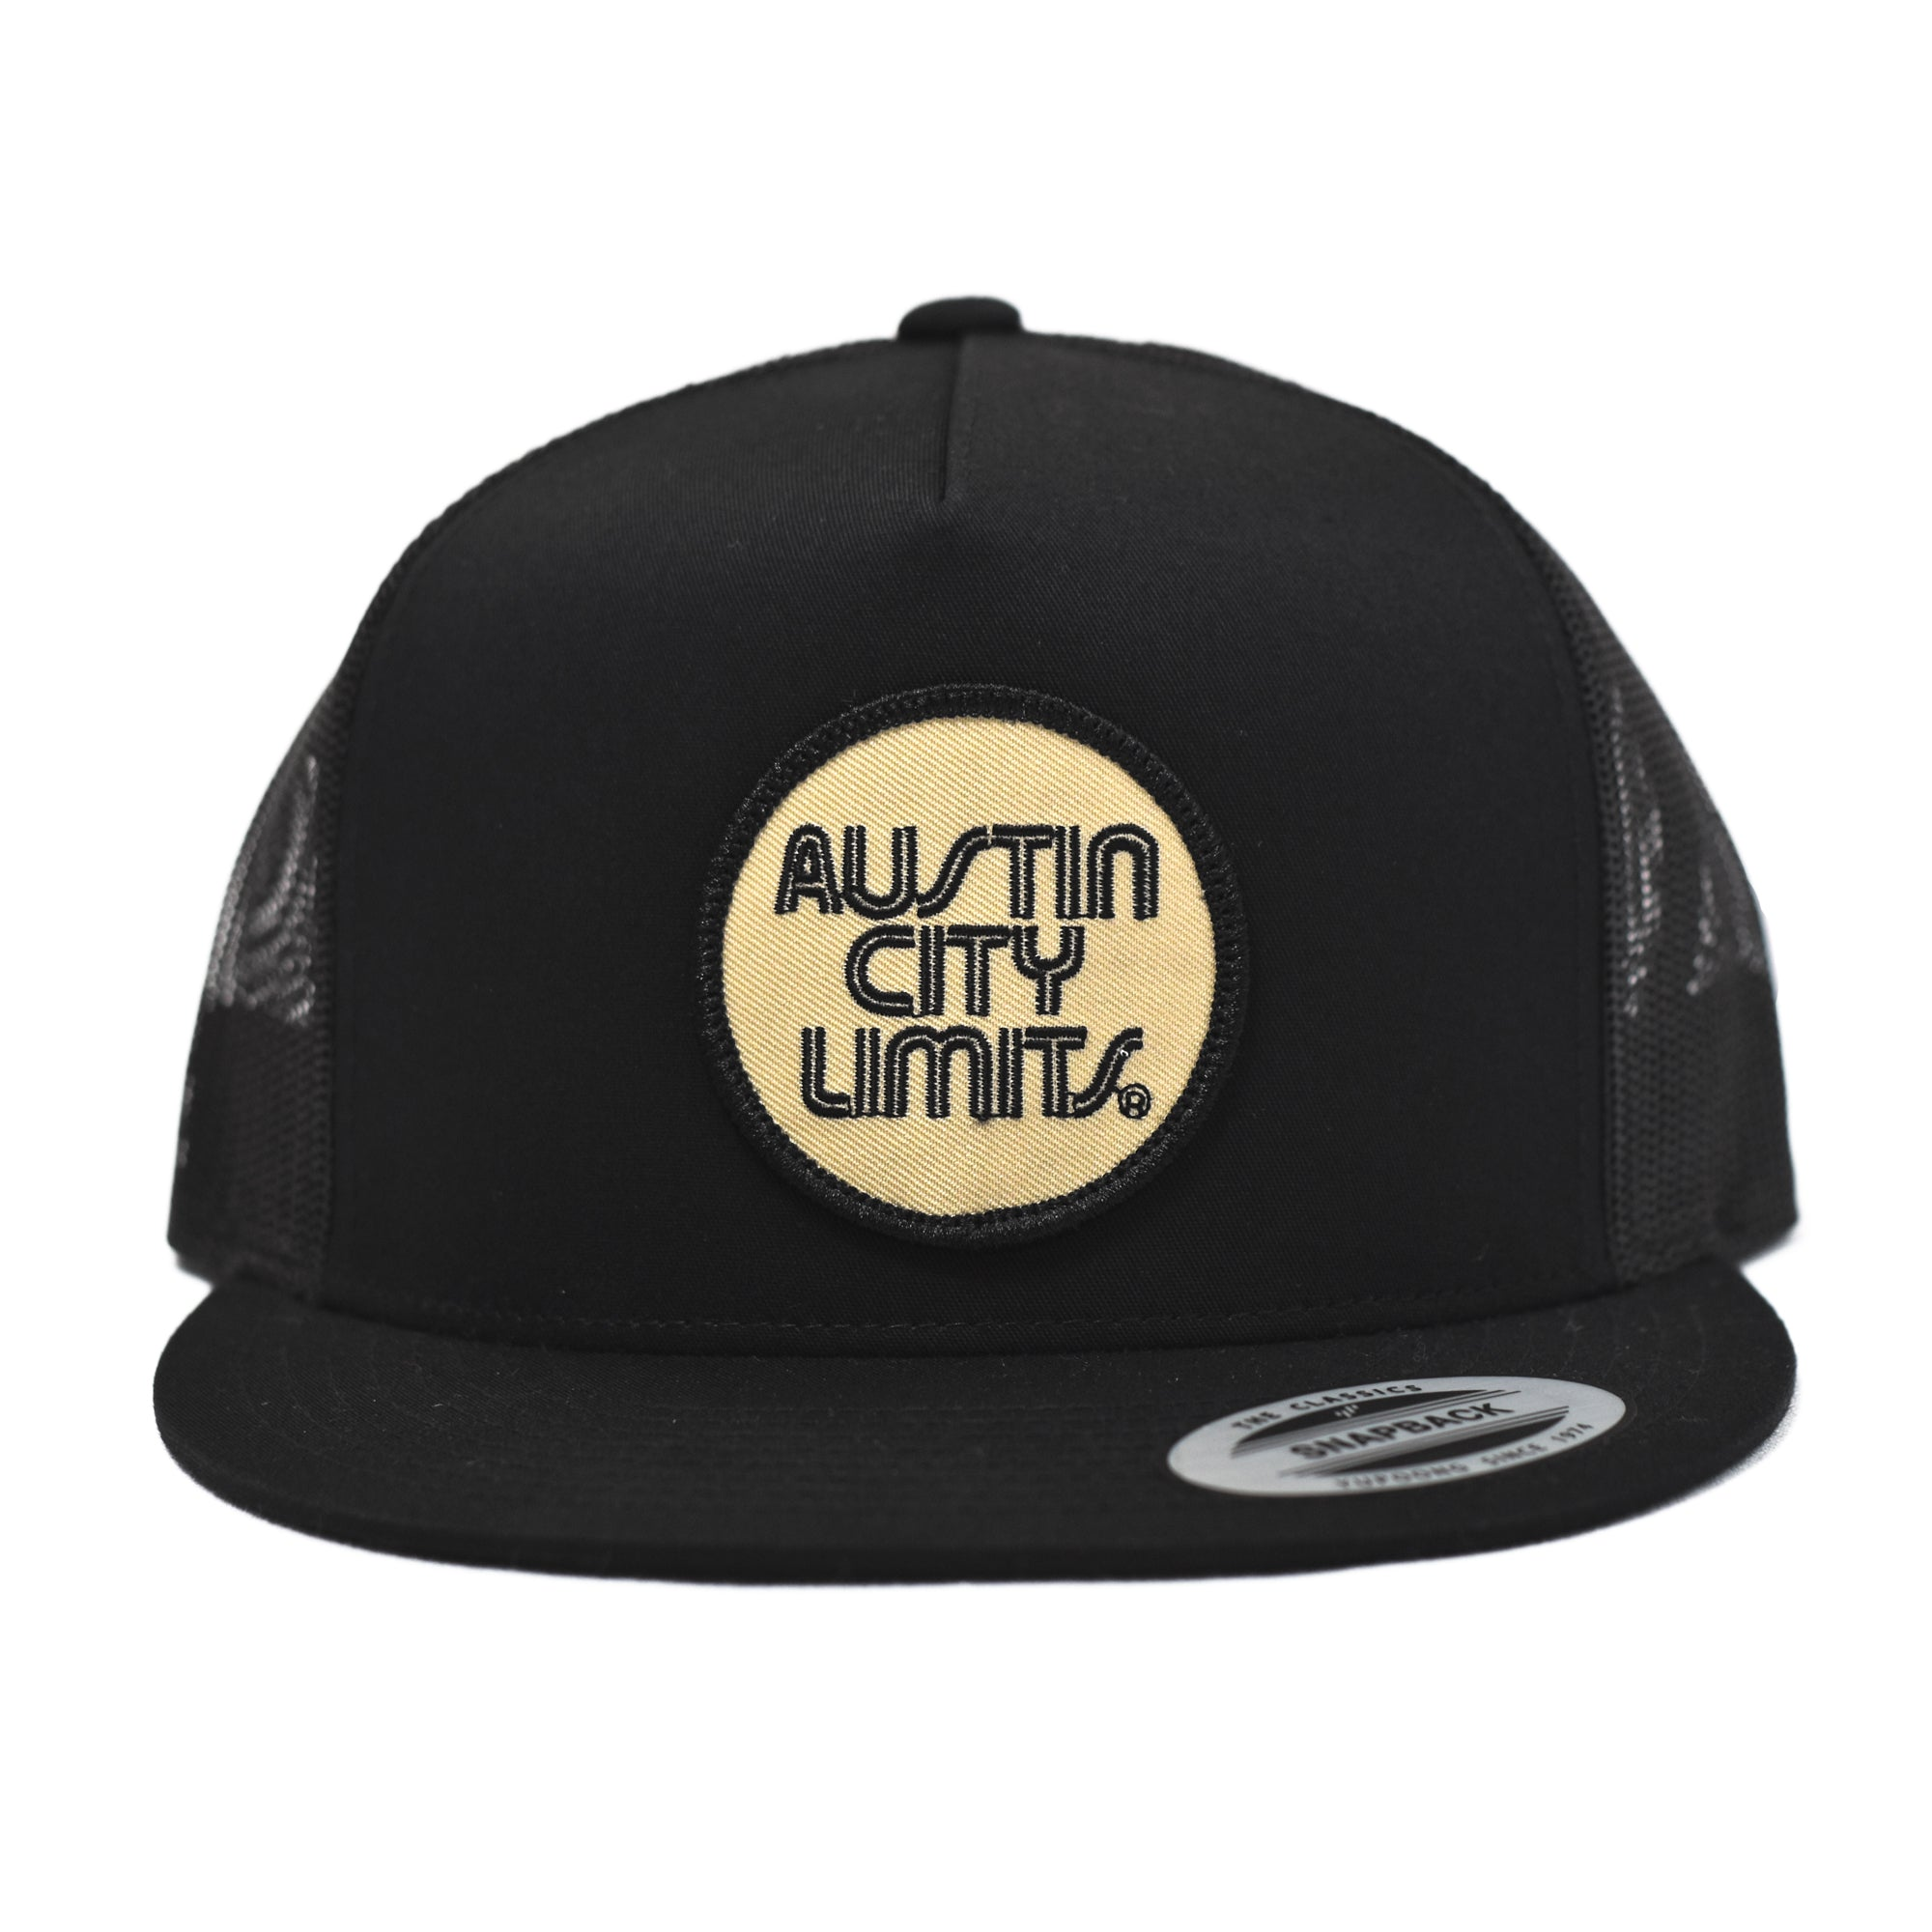 Austin City Limits Black & Tan Mesh Flat Bill Snapback